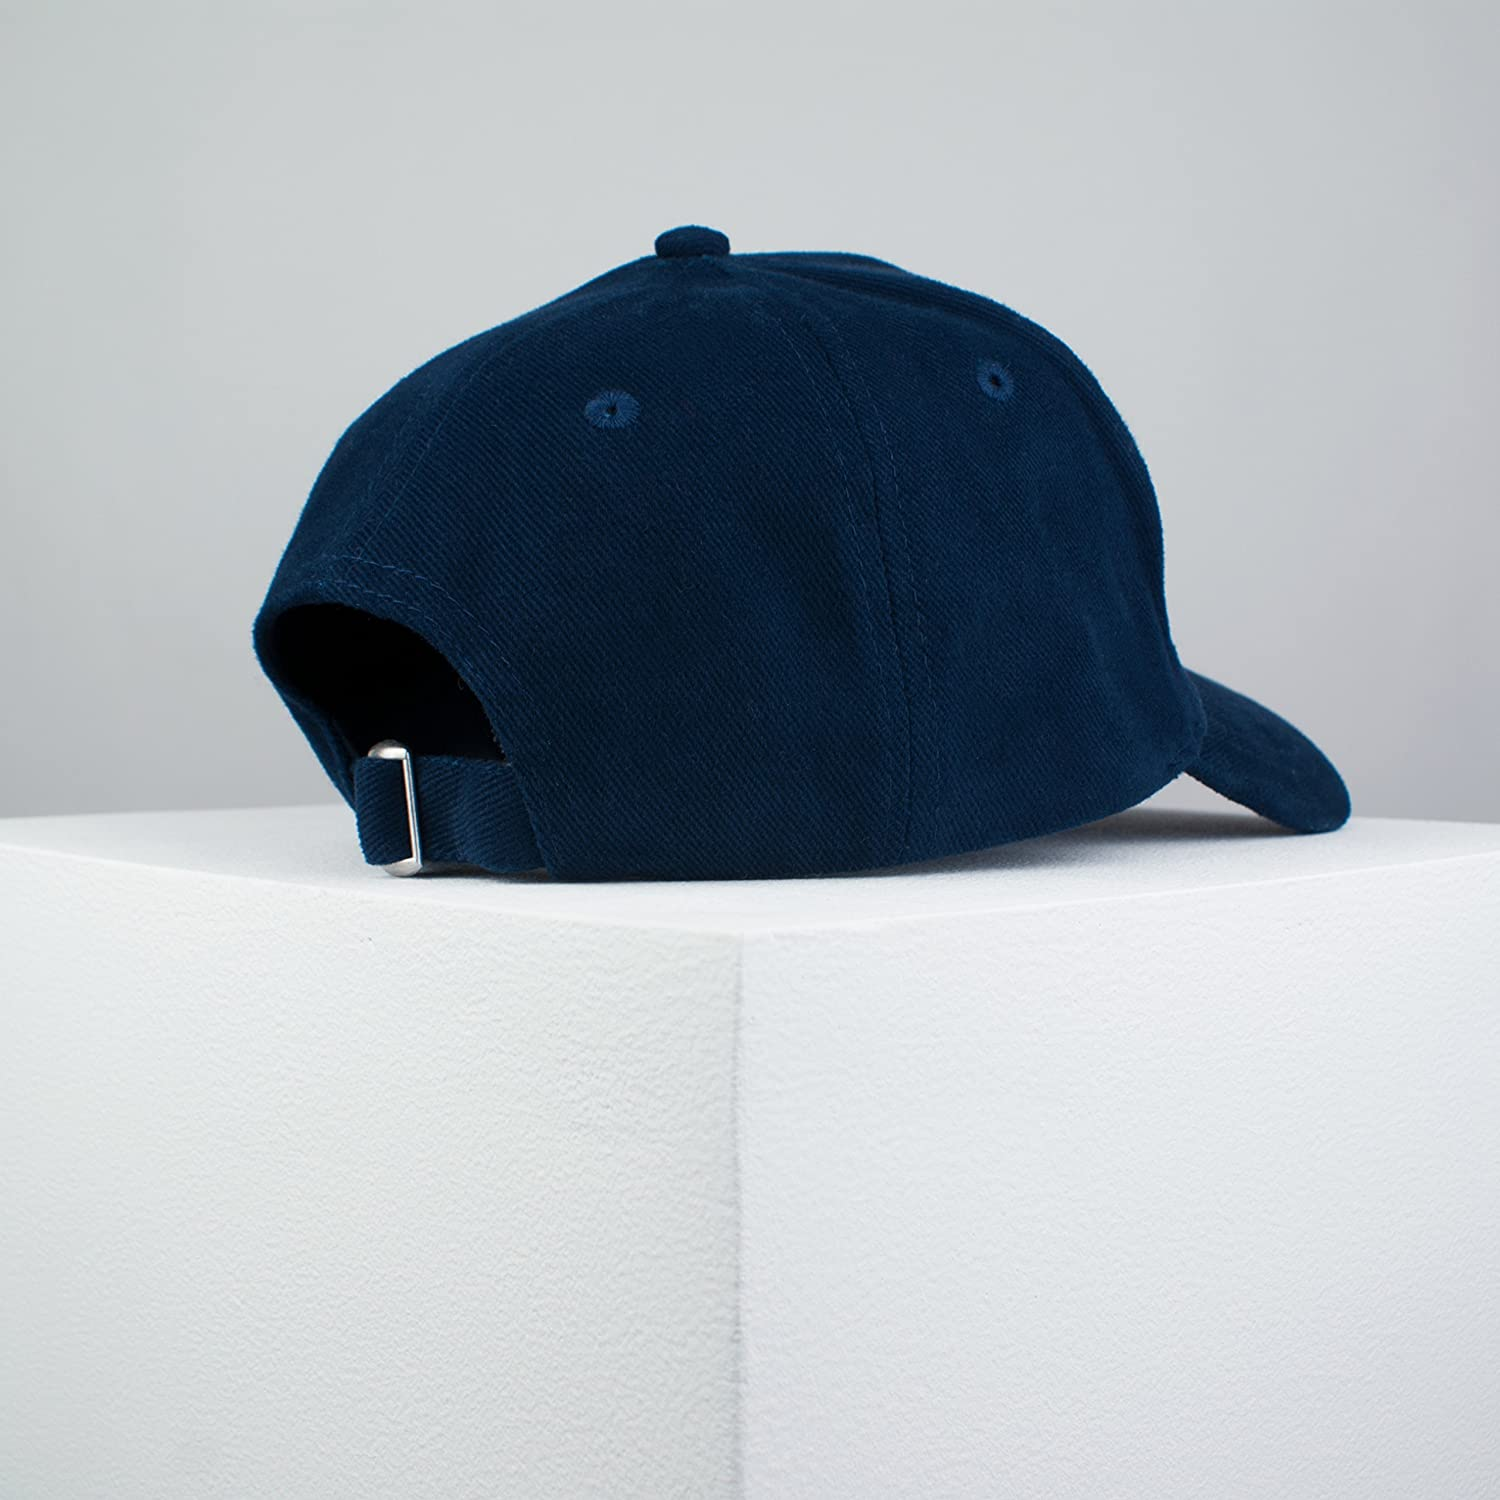 f87f62853d0 Hatty Hats Embroidery Rainy Day Embroidered Baseball Cap  Navy Cloud Patches Anxiety Embroidery Patch Hat Dad Hat Cap Iron On  Patch Embroidered ...